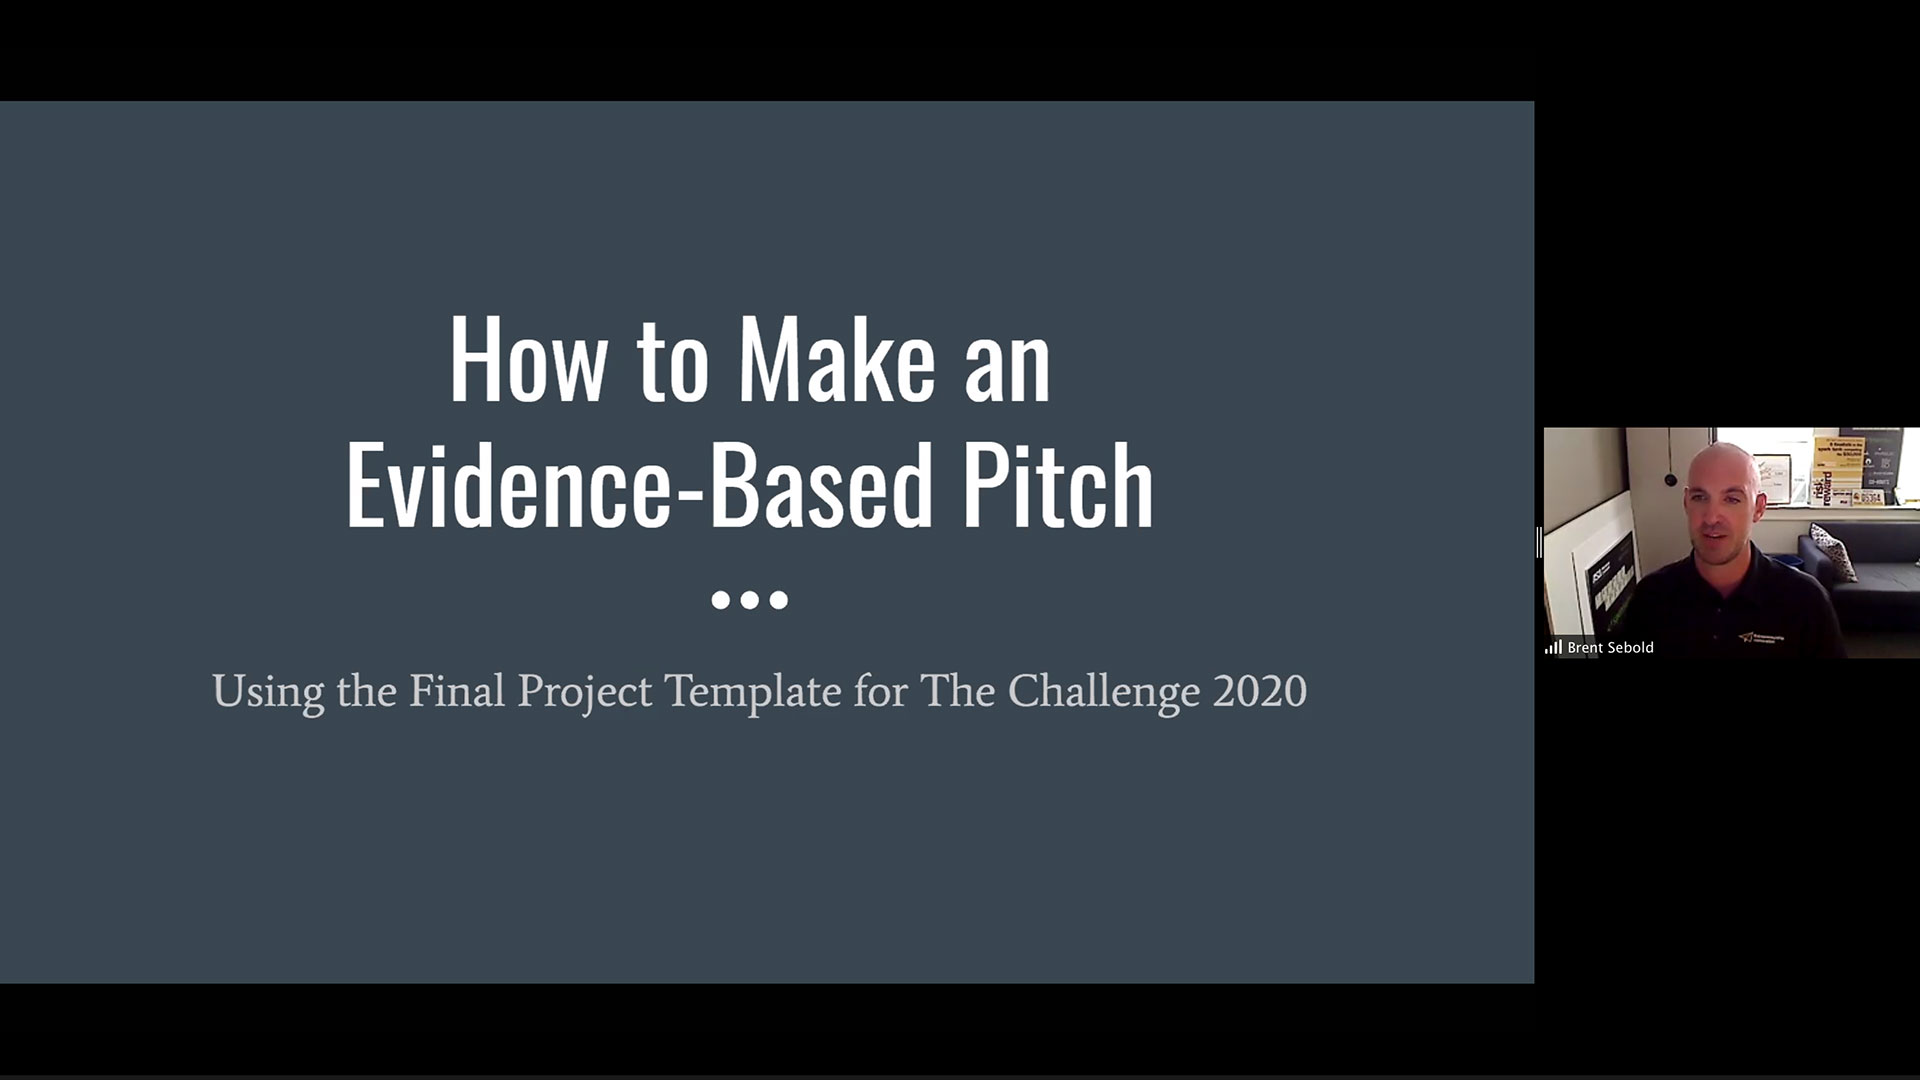 Arizona State University Lecturer Brent Sebold teaches participants of The Challenge how to create an evidence-based pitch on Zoom.